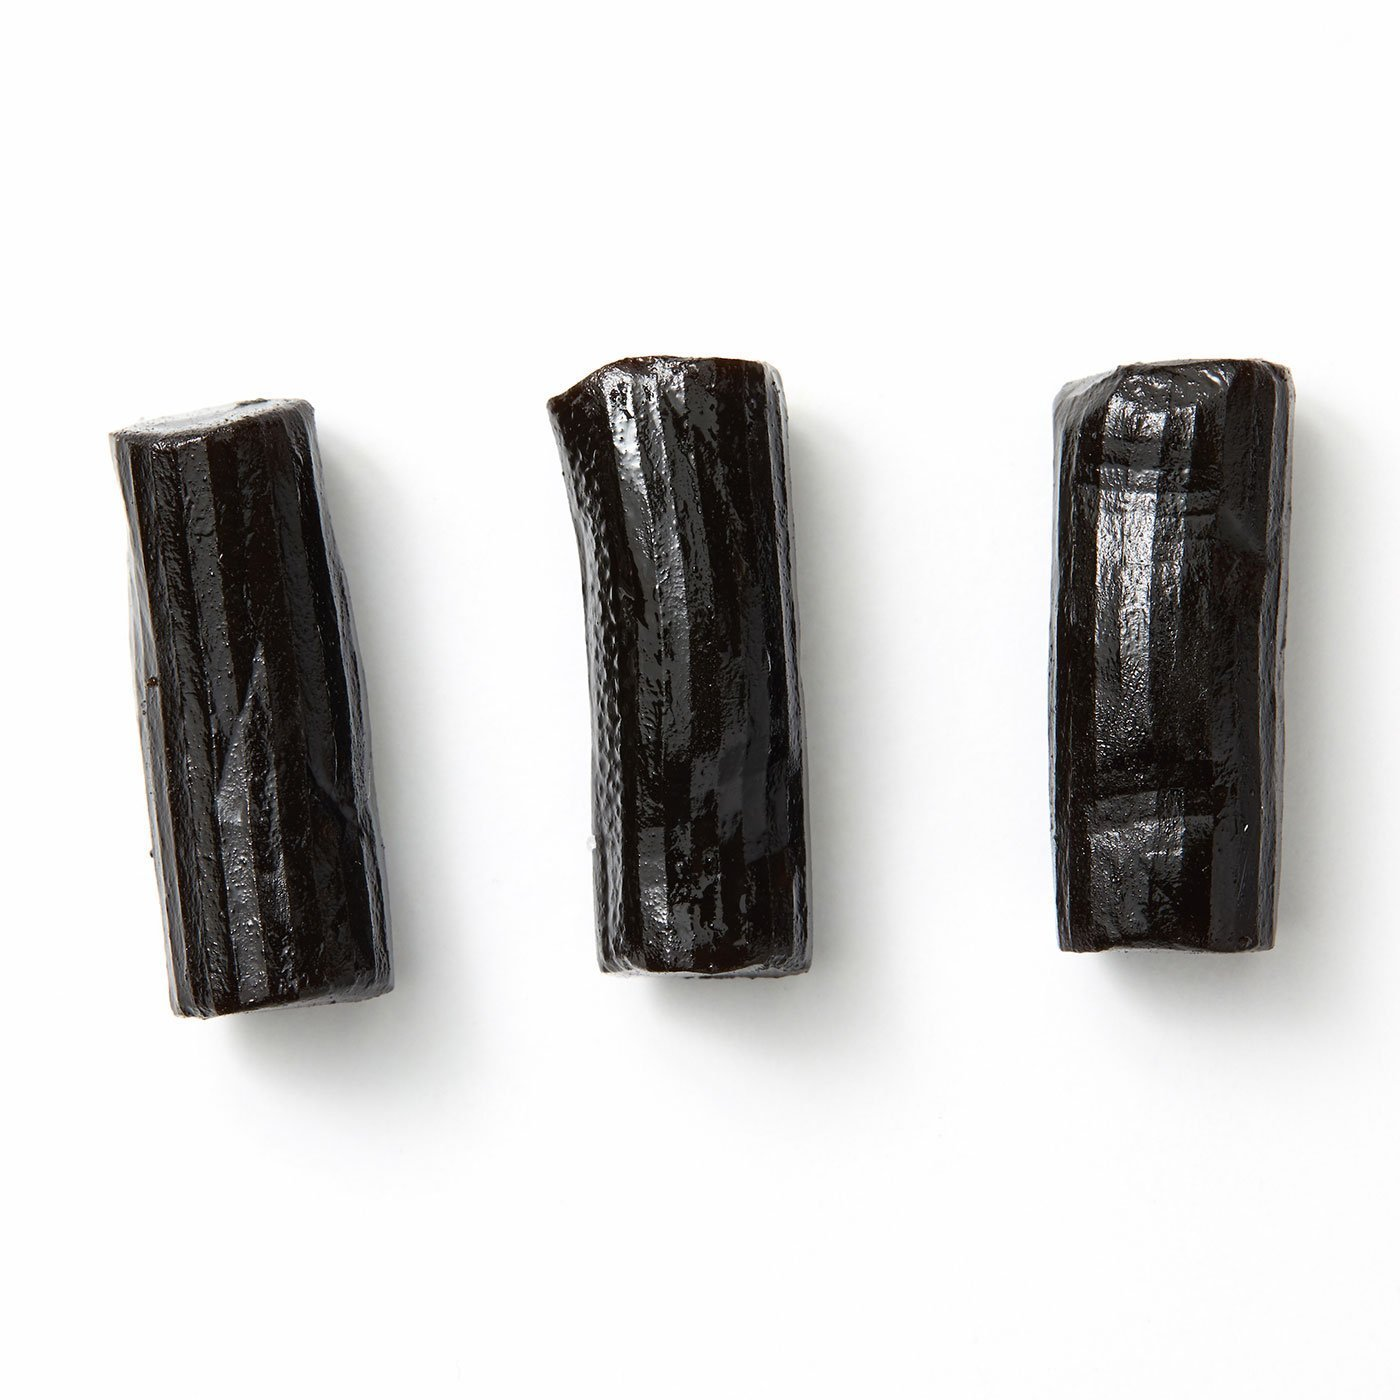 SQUISH Candies Classic Black Licorice